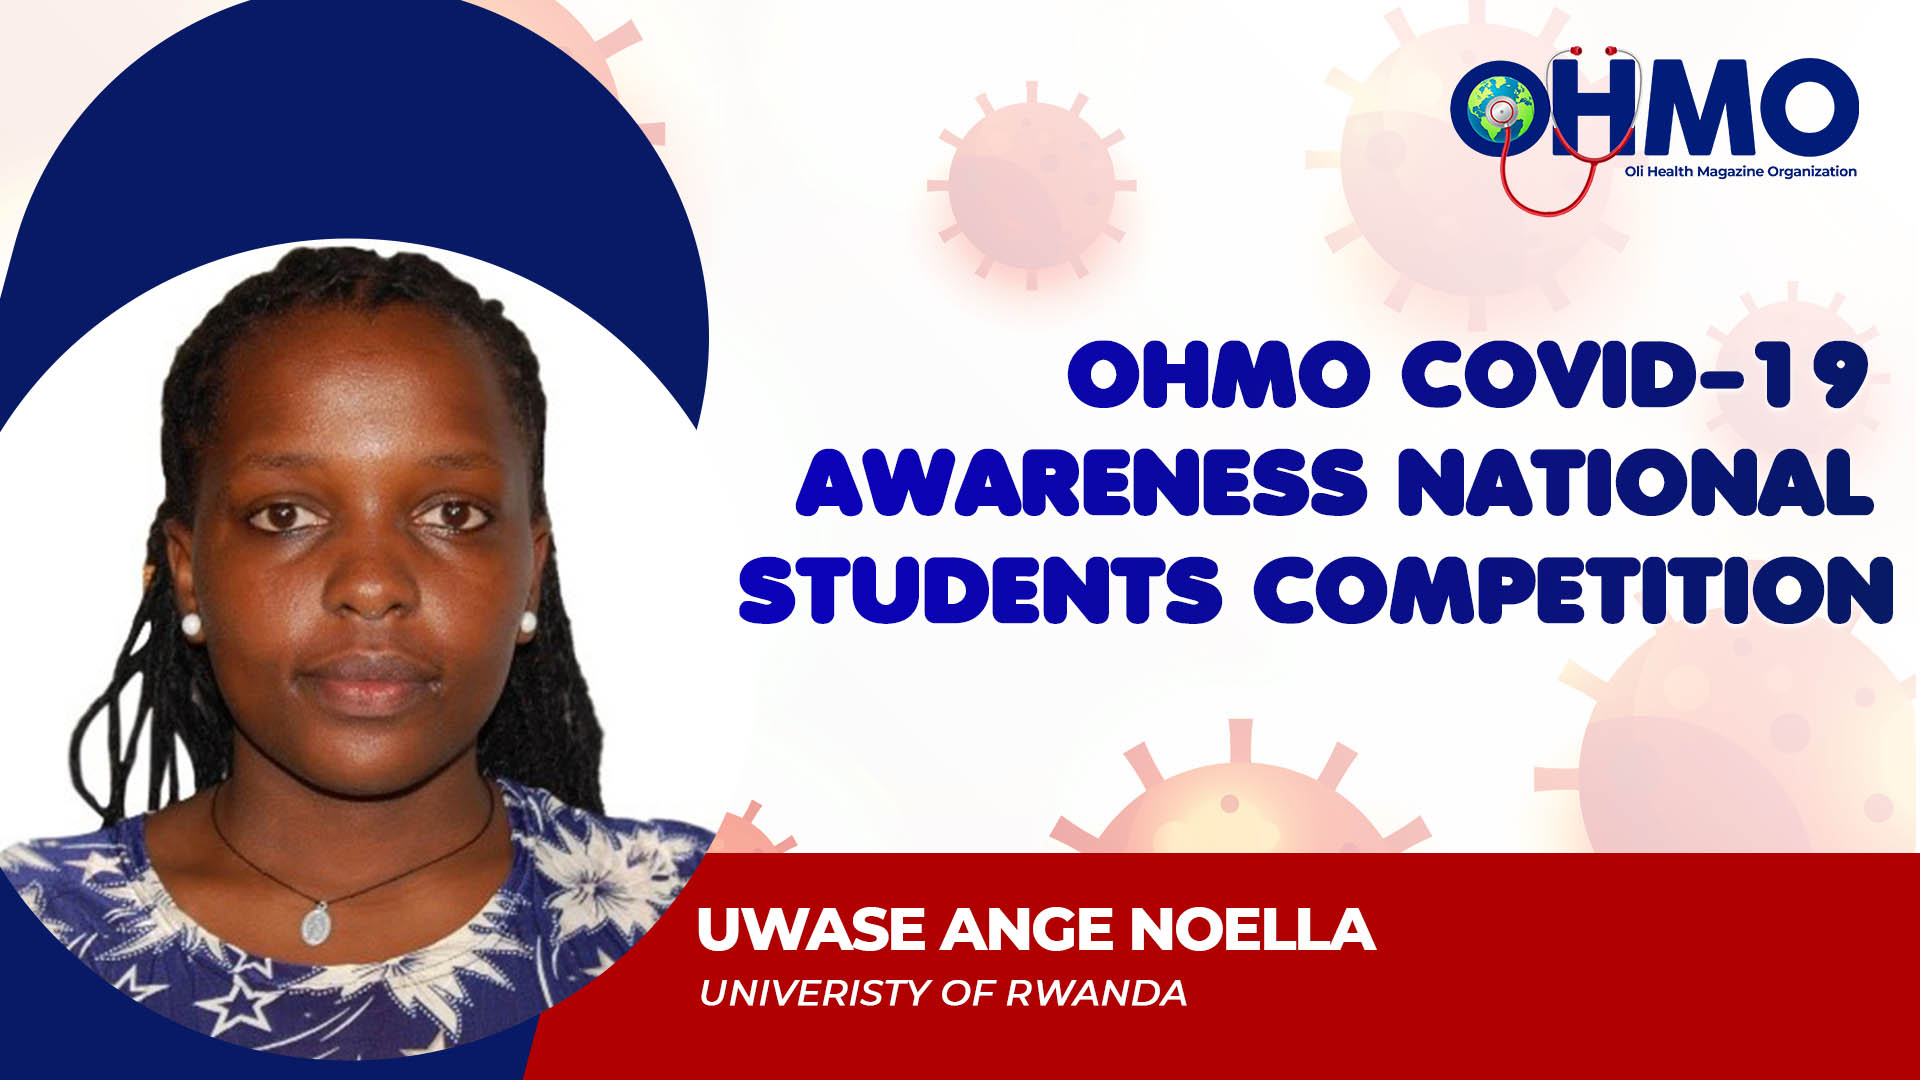 Coronavirus Disease, Self Care, Mental Health And Coping With The Pandemic - UWASE ANGE NOELLA from University of Rwanda (ENTRY 52)